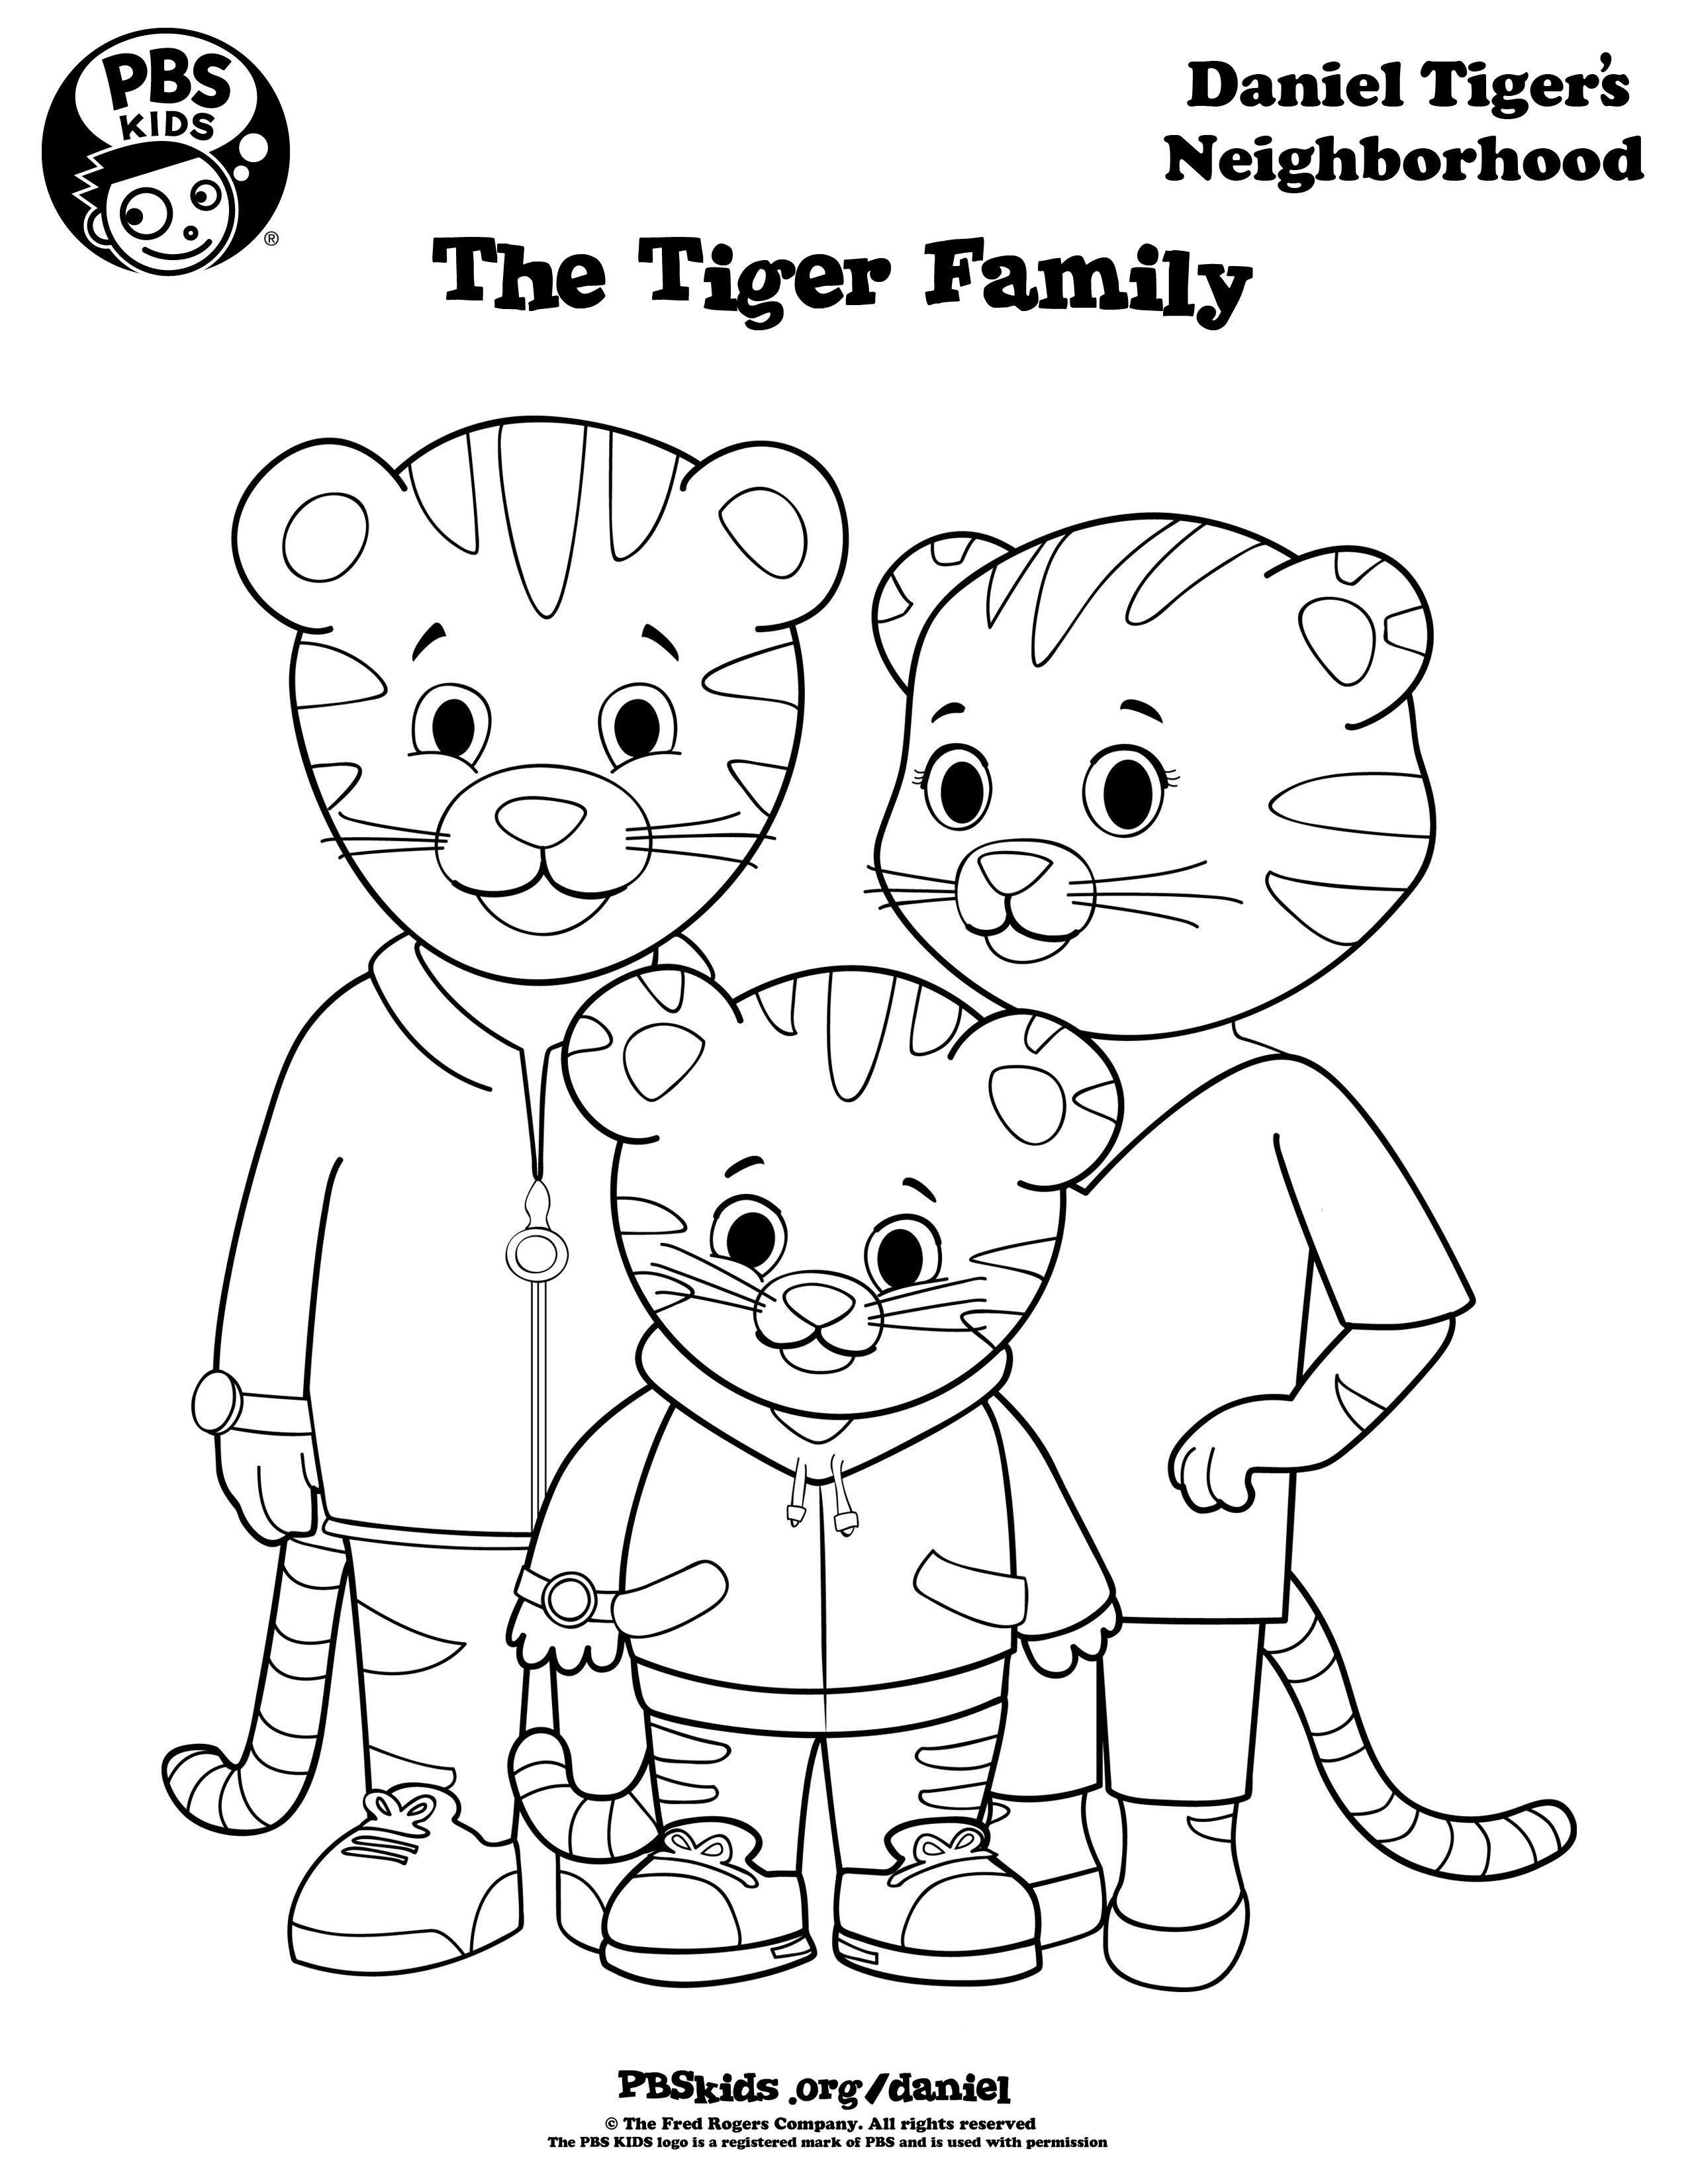 Oriental Trading Coloring Pages Fresh 30 Oriental Trading Coloring Pages Download Colorin In 2020 Family Coloring Pages Halloween Coloring Pages Cartoon Coloring Pages